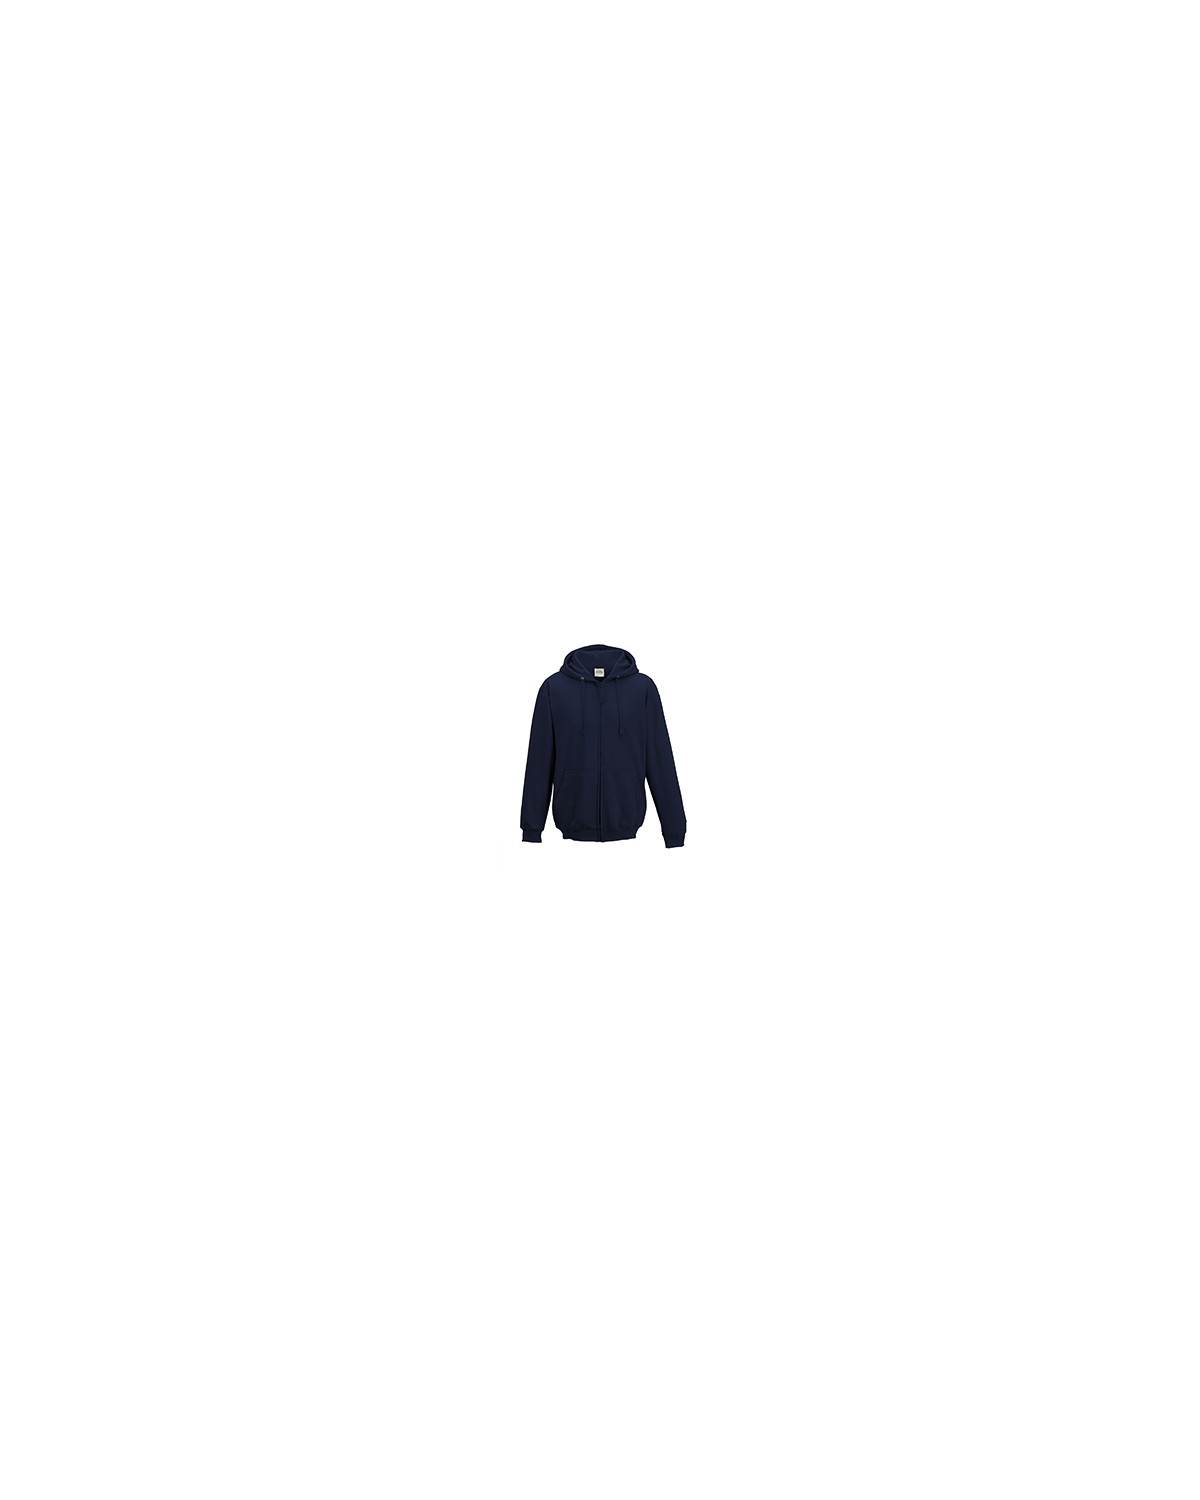 JHA050 Just Hoods By AWDis FRENCH NAVY